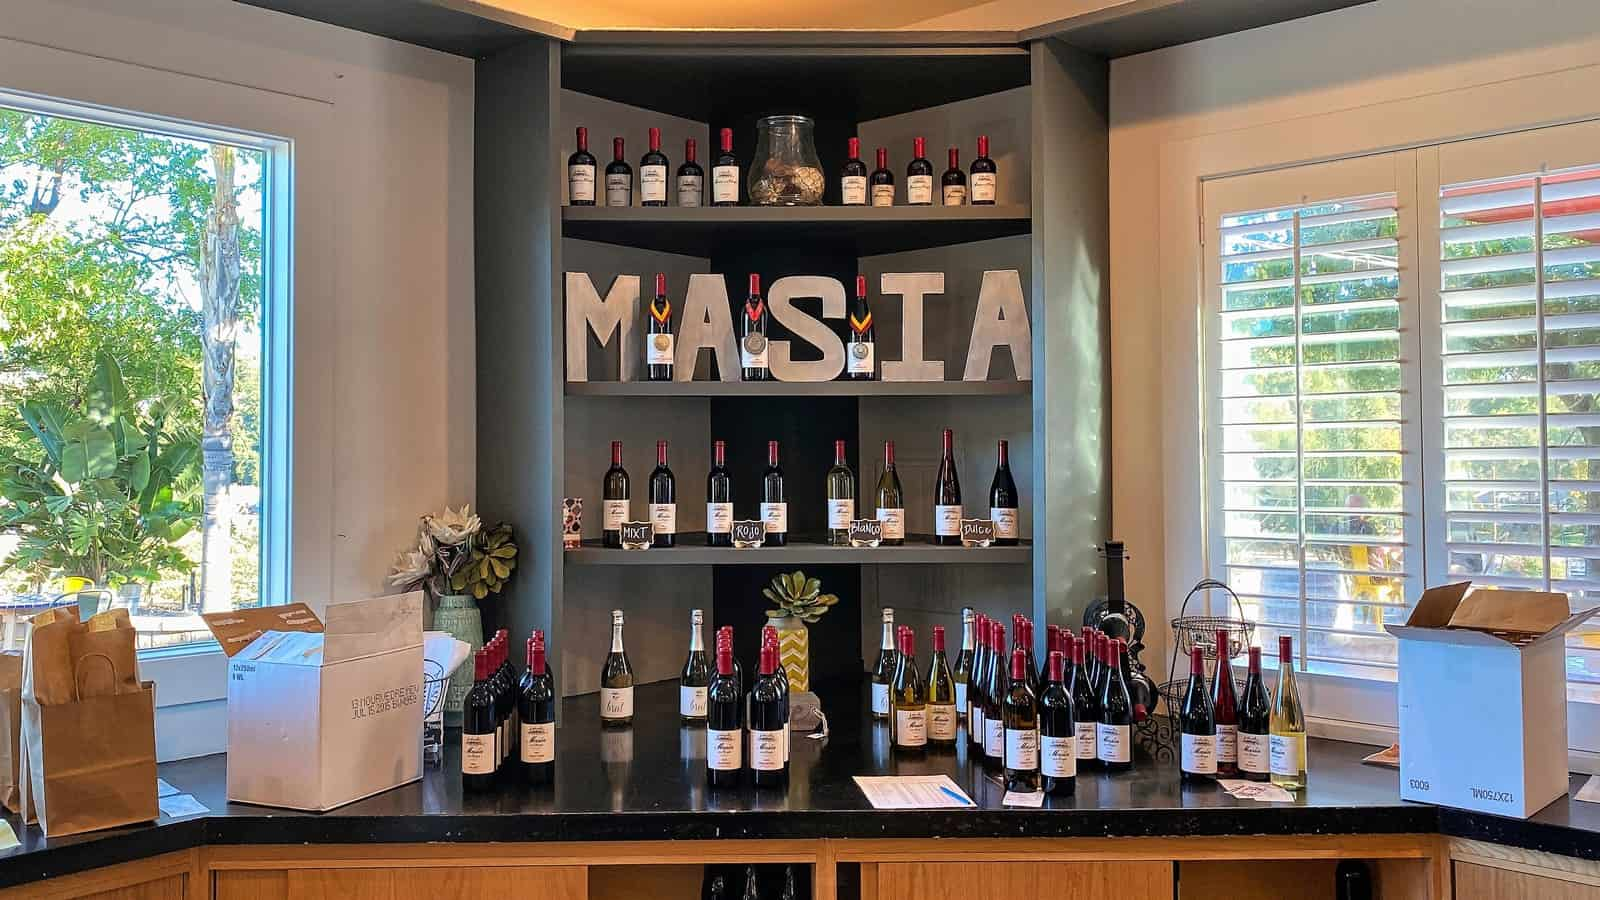 masia winery